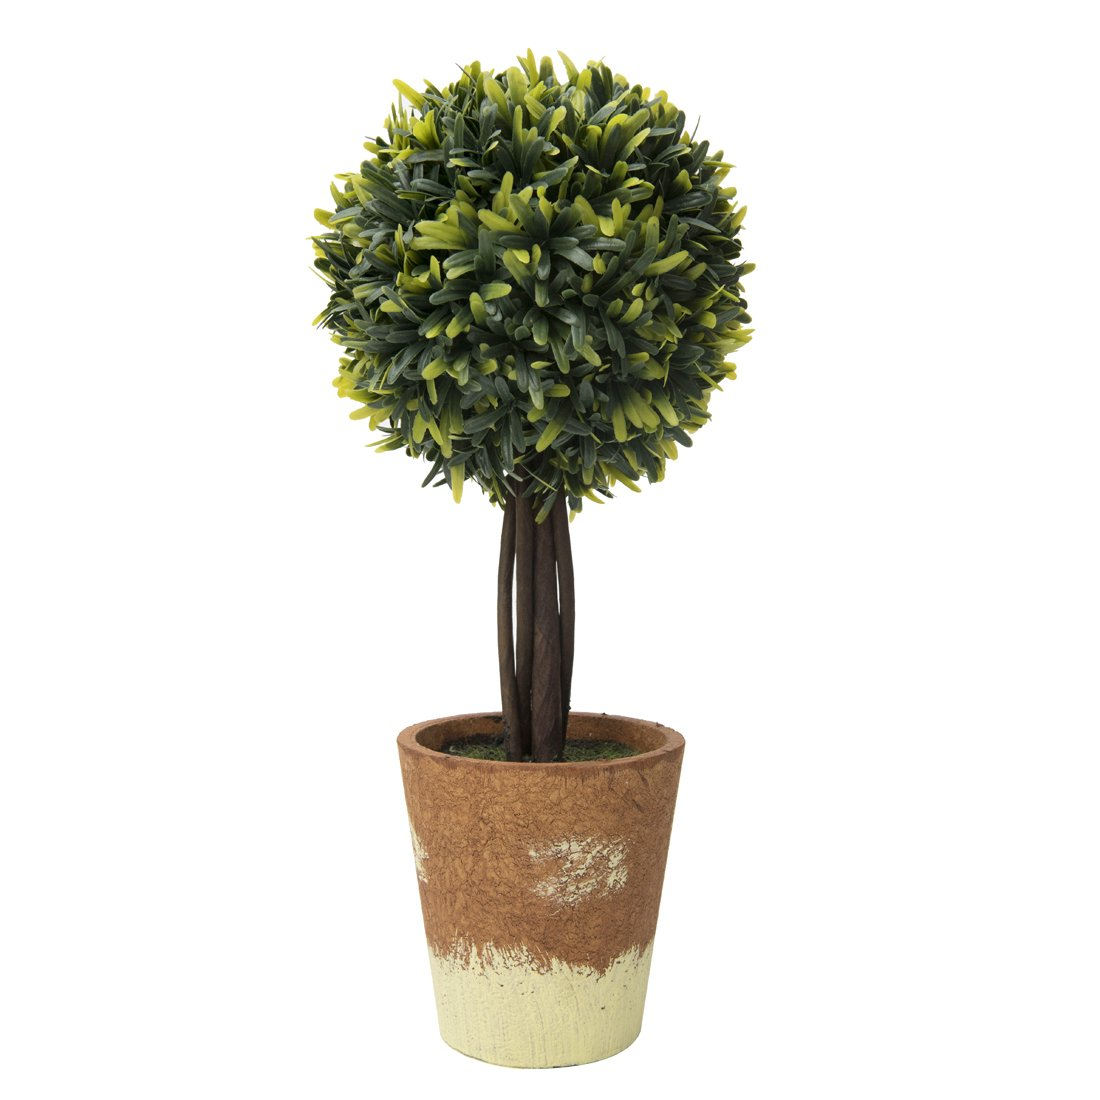 """RUOPEI Artificial Boxwood Topiary Ball Tree in Planter – 16.5"""" Realistic Fake Plastic Greenery Plant for Home Shelving, Office Desks, Event Tabletop, Counter Top Decor"""